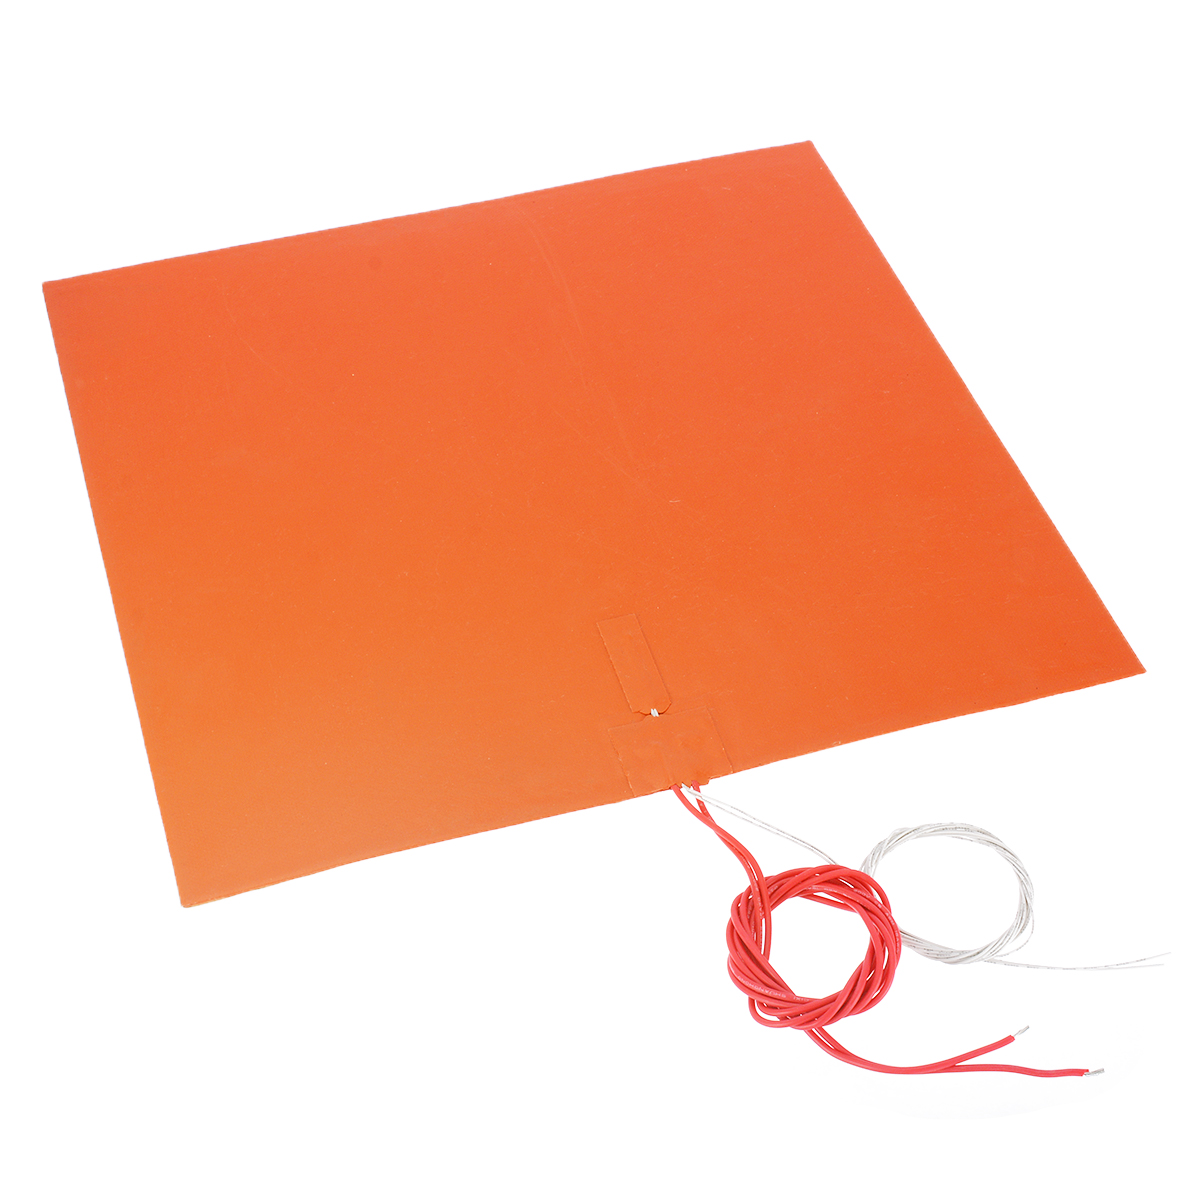 400 400mm 1 5MM 220V 1400W 3D Silicone Heated Bed Heating Pad Flexible Waterproof for 3D